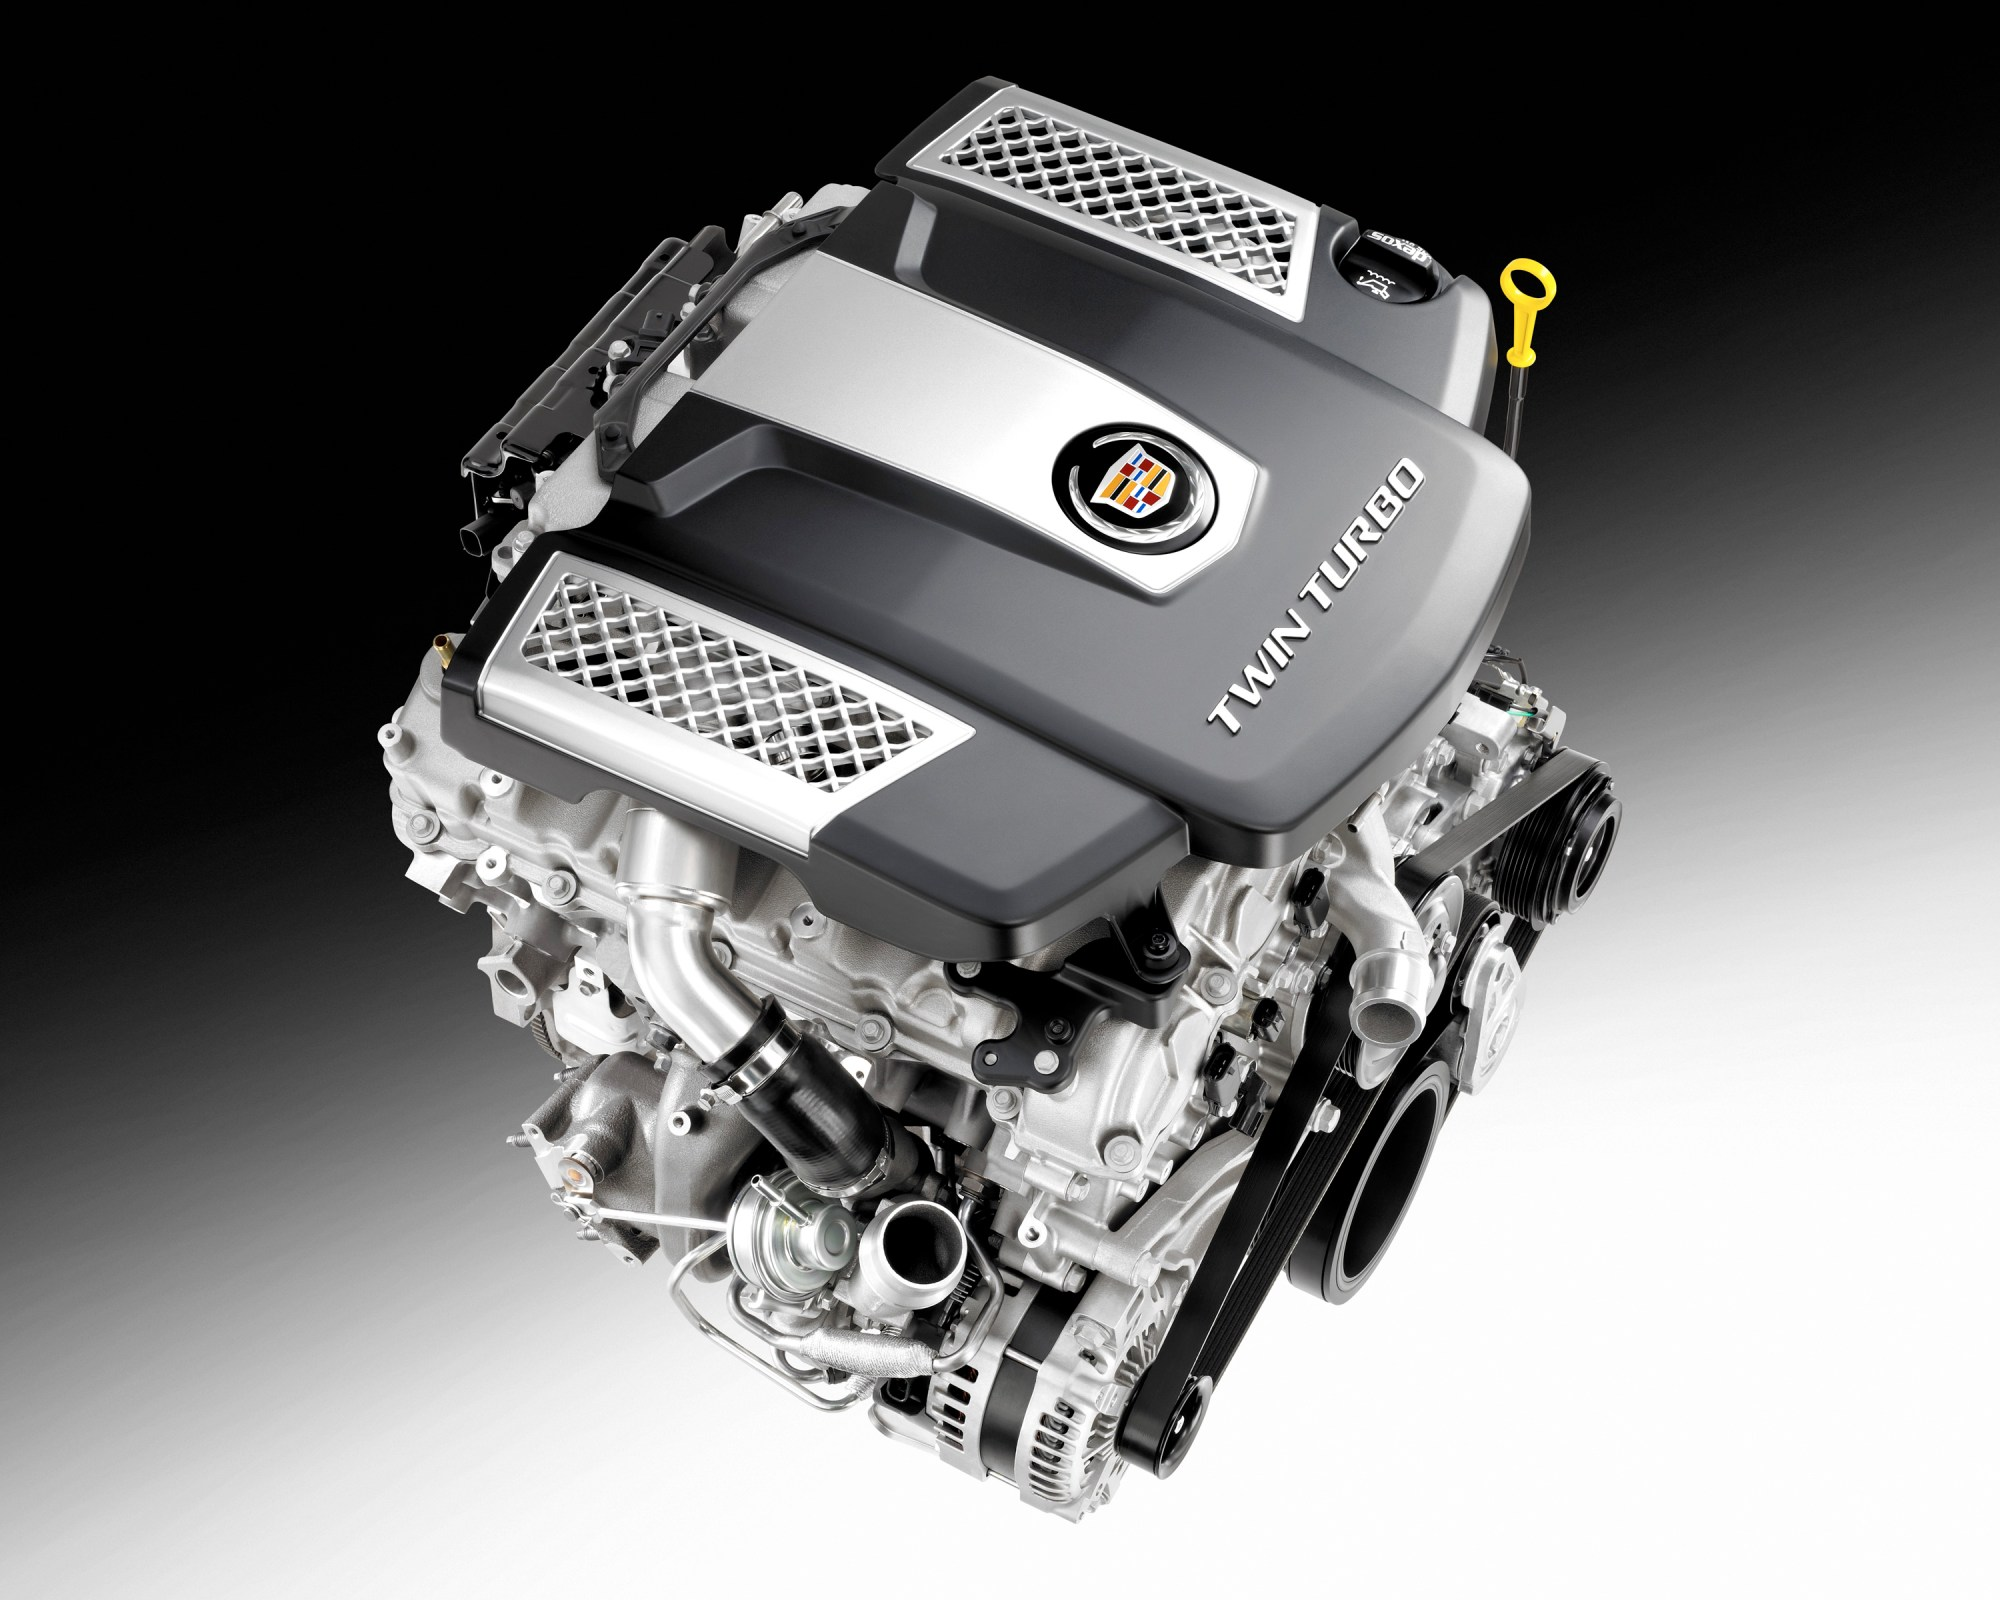 hight resolution of cadillac twin turbo debuts in all new 2014 cts sedan cadillac v6 engine diagram